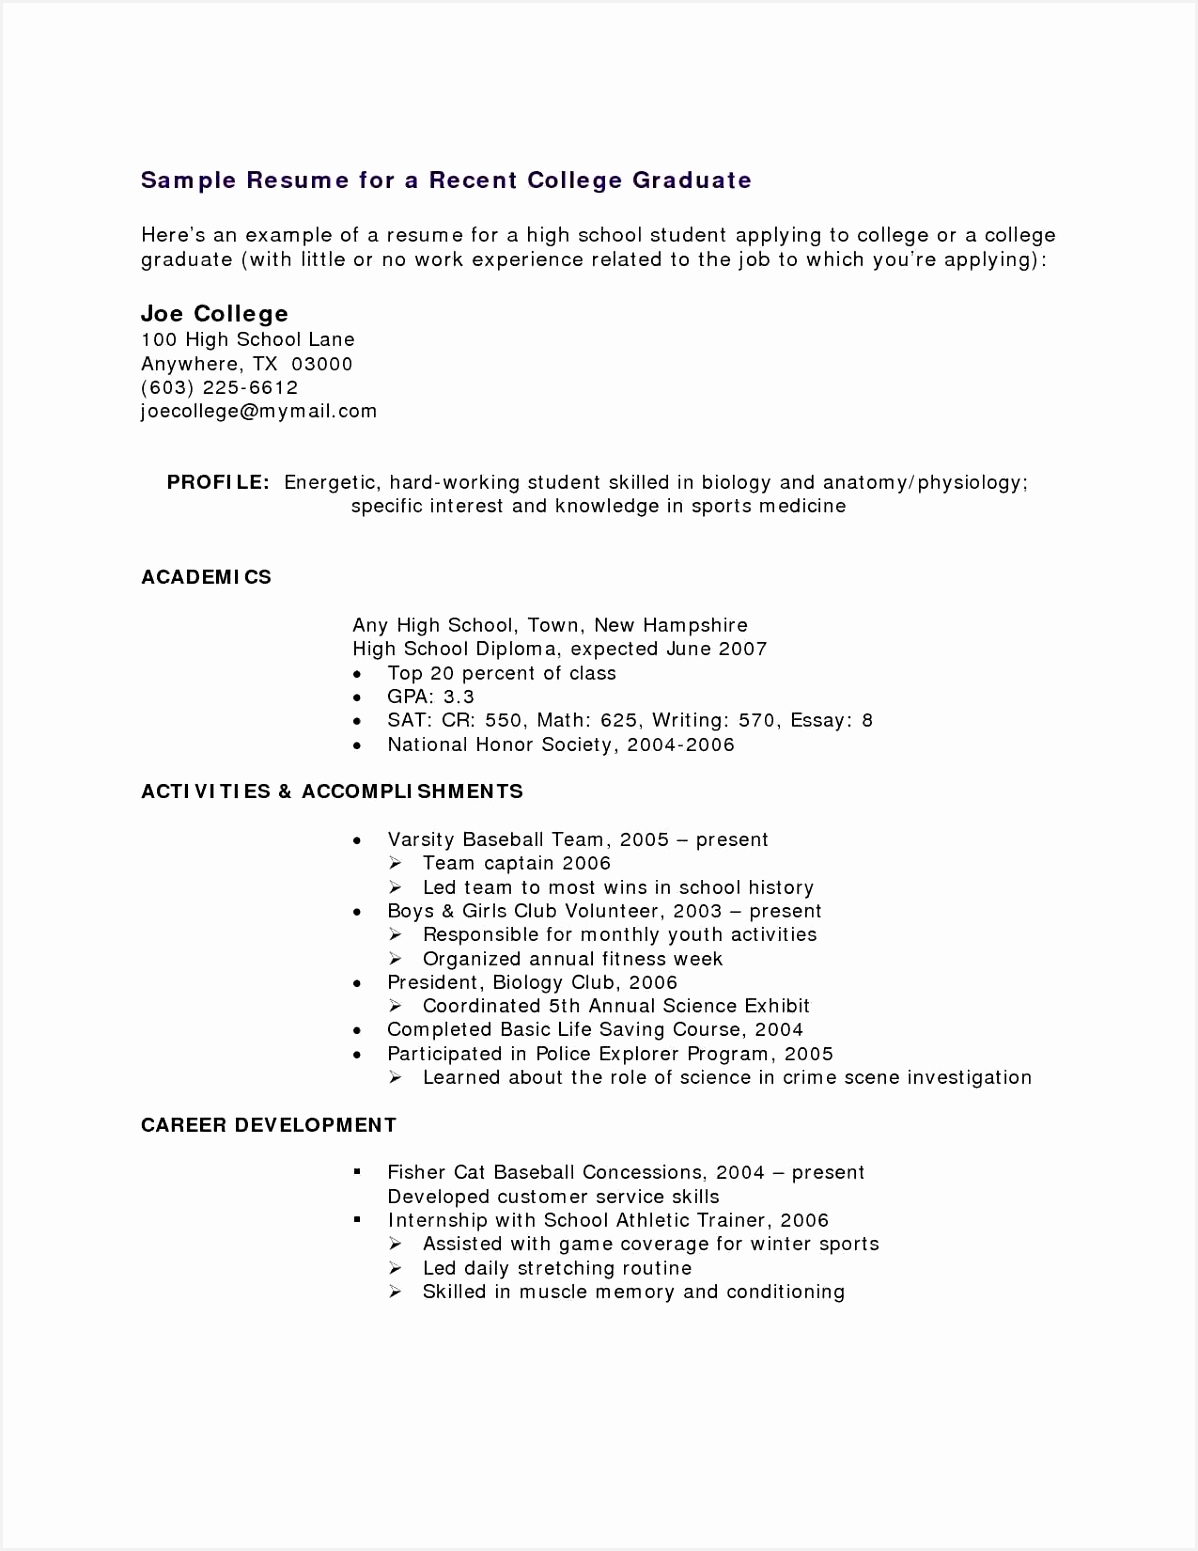 Resume Samples for Graduate School Gchle Inspirational Student Affairs Resume Samples Best Resume Examples for Jobs with Of Resume Samples for Graduate School Qcsae Lovely Graduate School Resume Examples Unique Lpn Resume Sample New Line